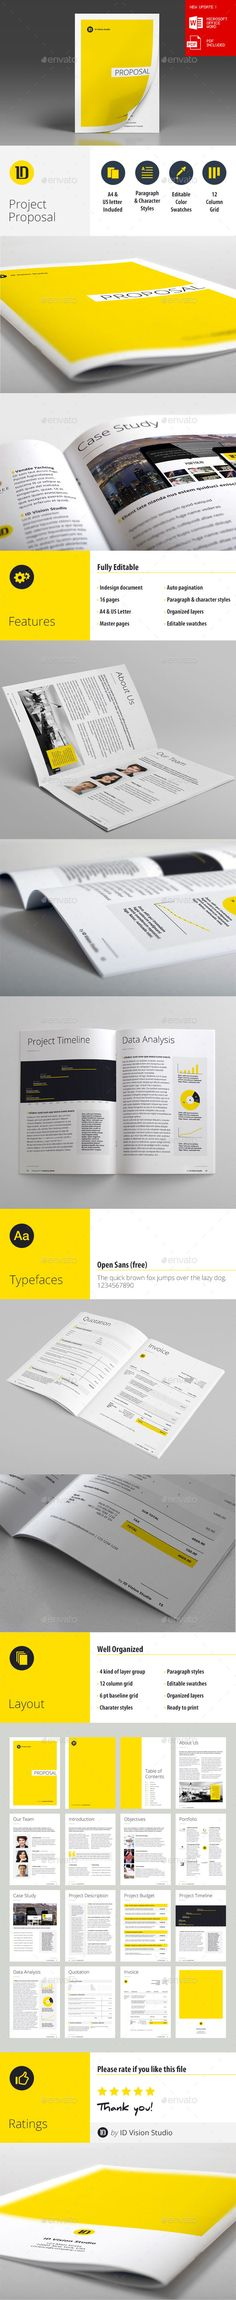 Creative Project Proposal Template #design Download http - proposal template microsoft word